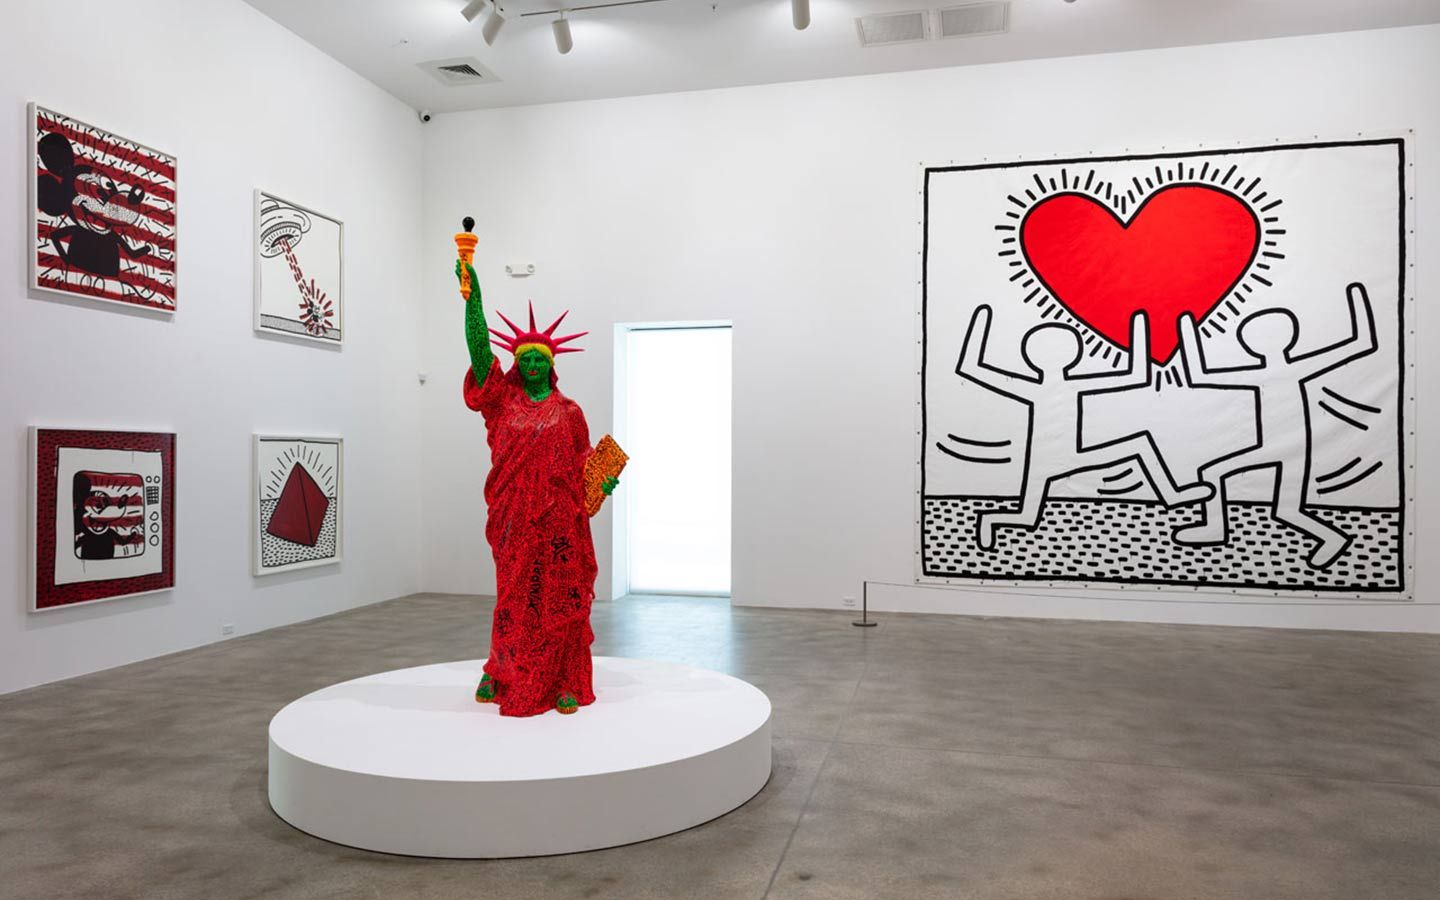 The Rubell Museum